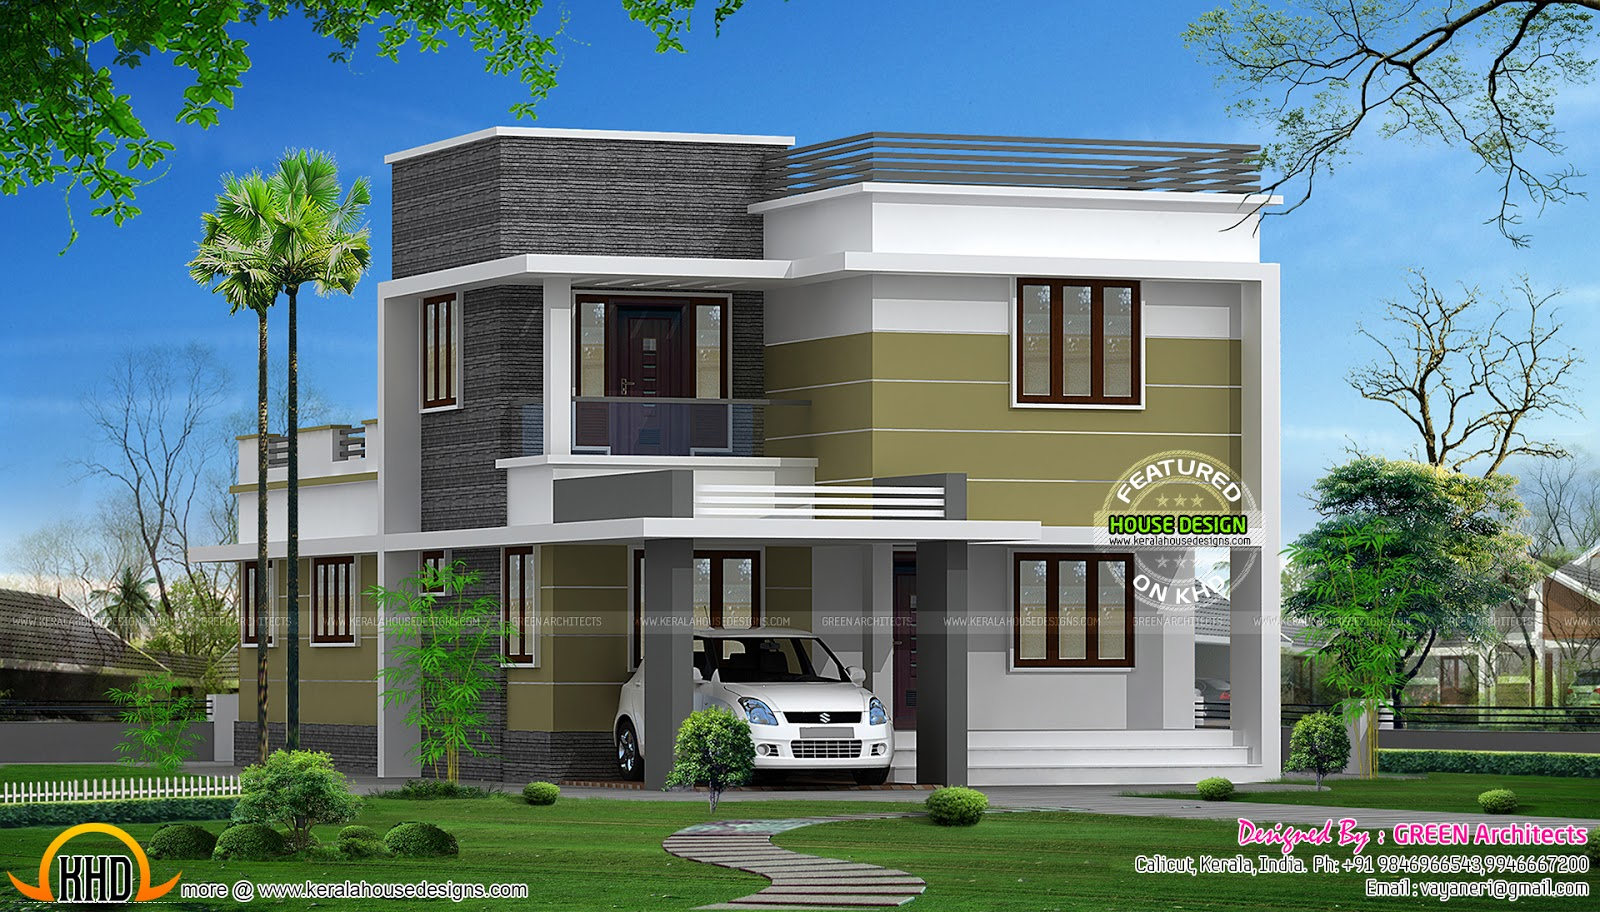 186 sq m small double storied house in kerala kerala for Kerala home designs photos in double floor